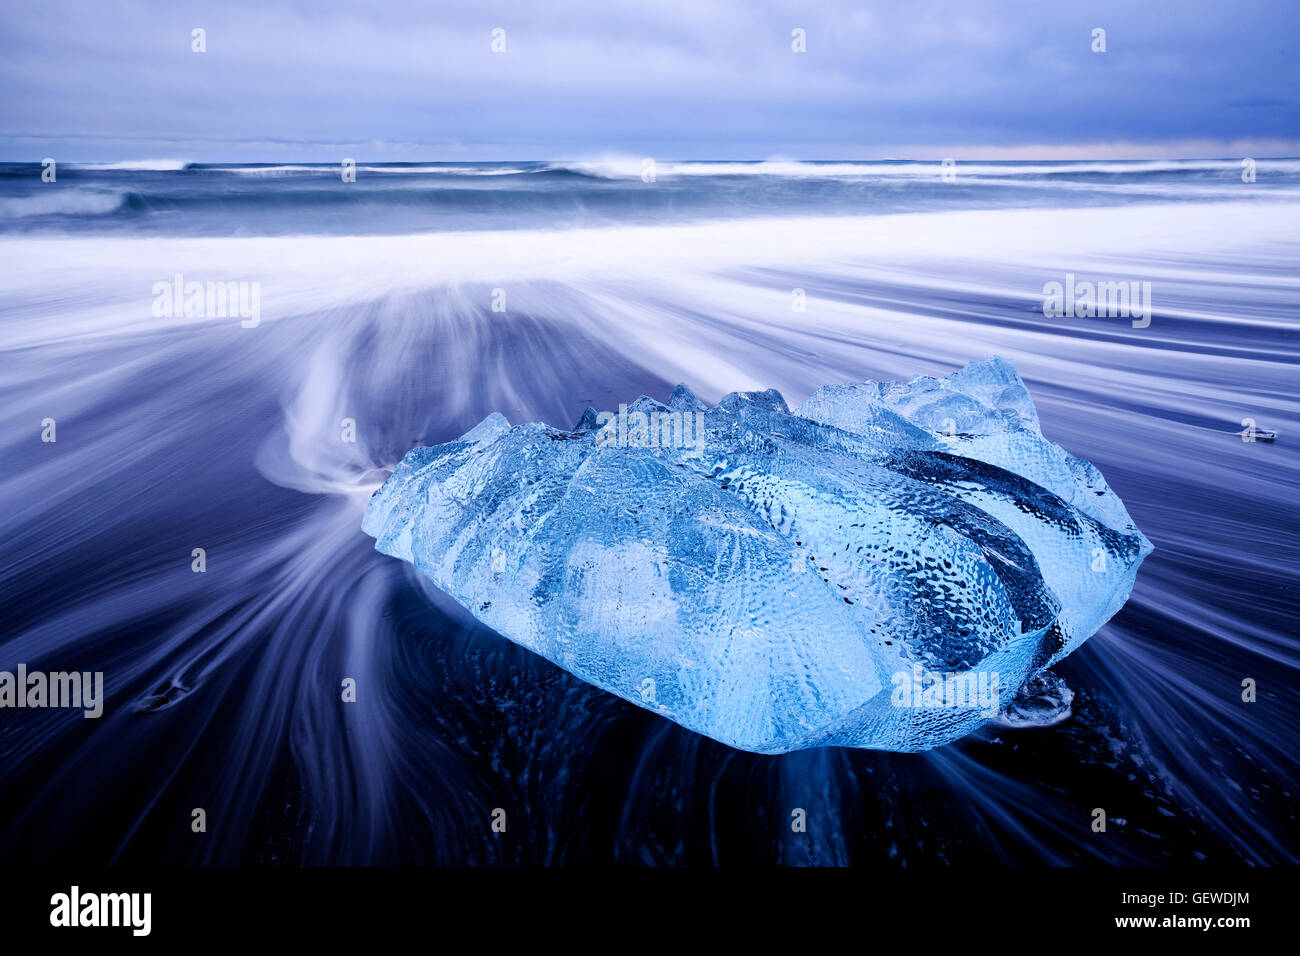 Waves washing around a small iceberg on the beach at Jokulsarlon in Iceland. Stock Photo